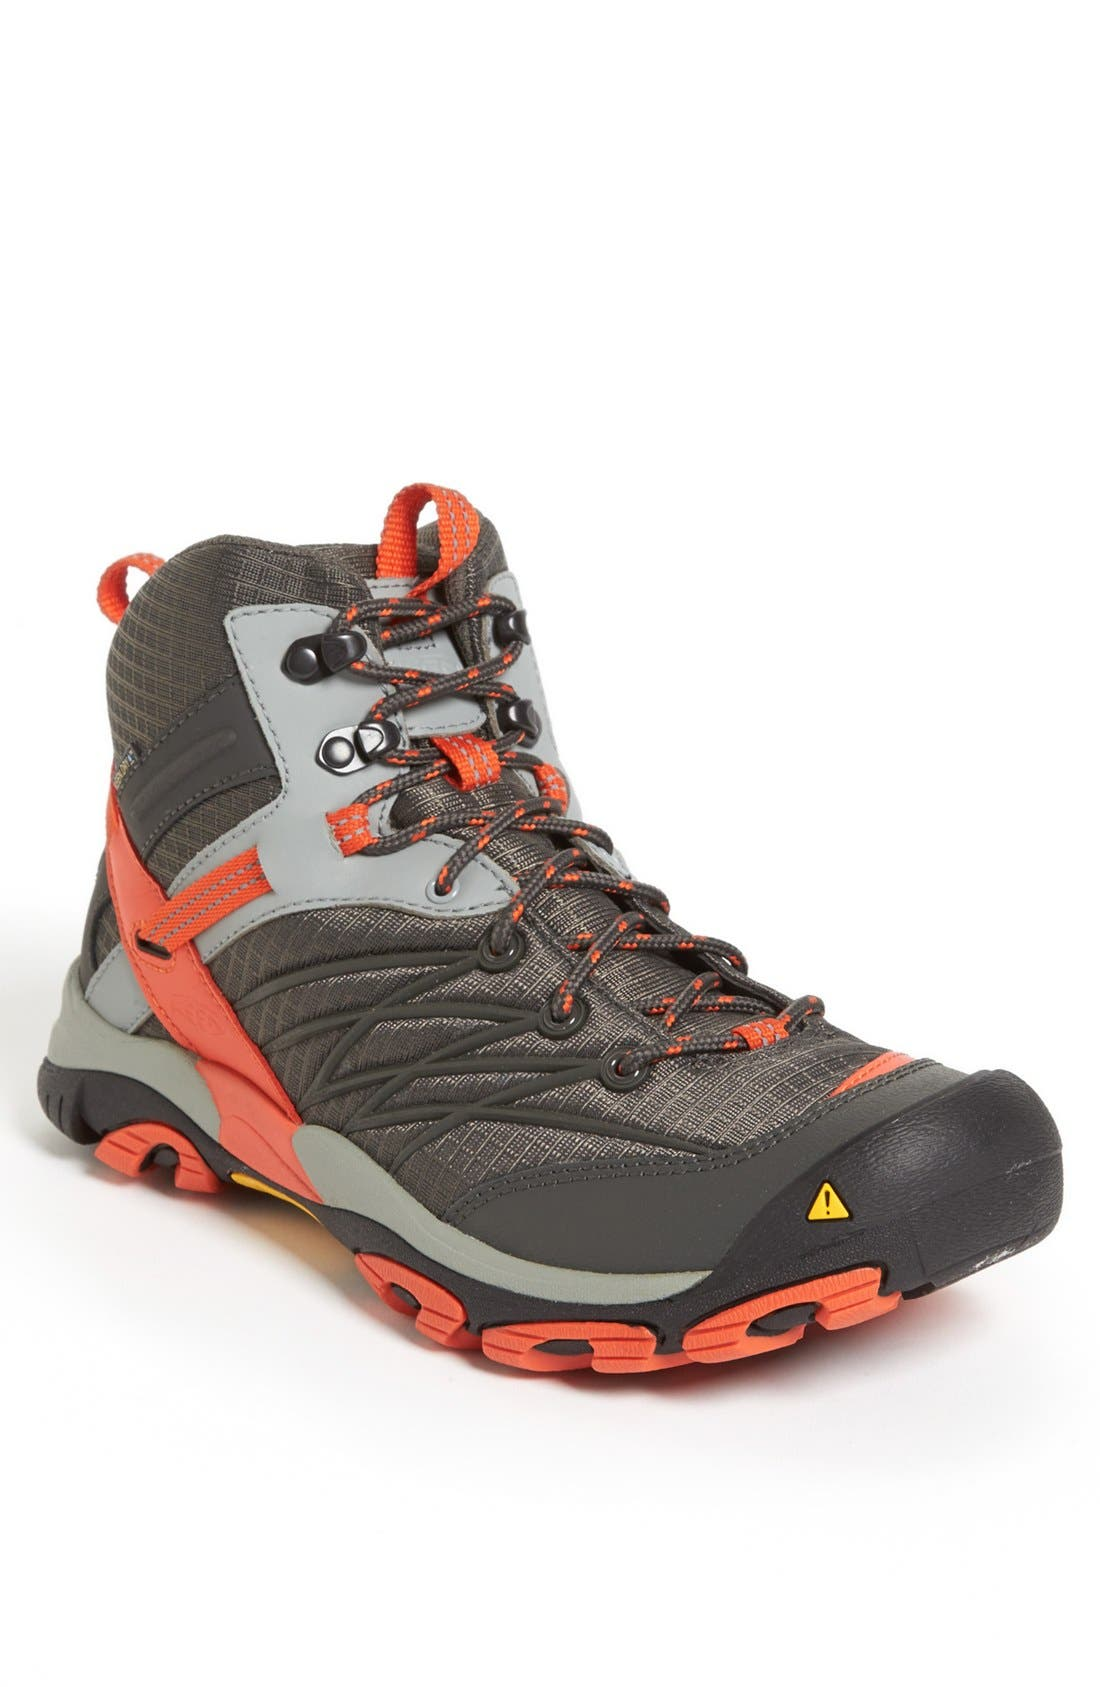 Main Image - Keen 'Marshall Mid WP' Hiking Boot (Men)